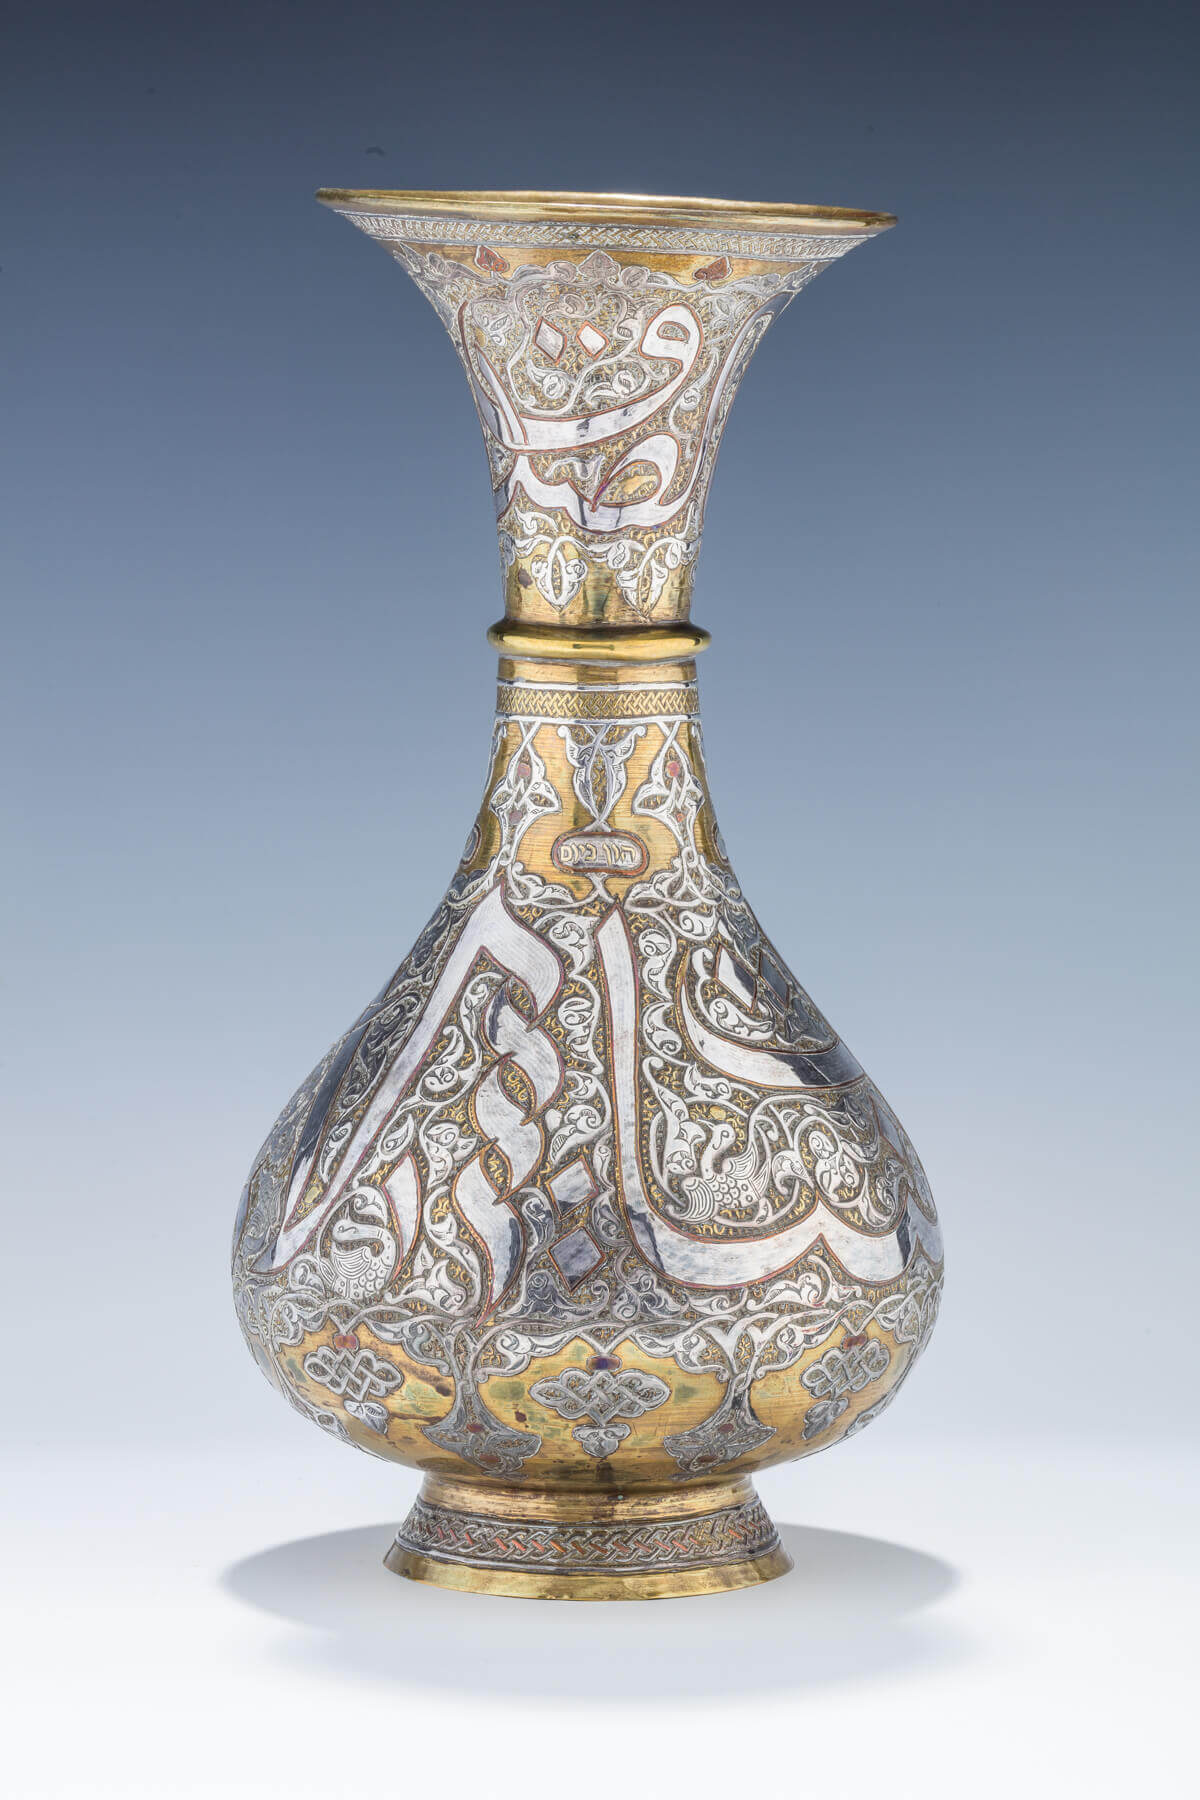 077. AN IMPORTANT DAMASCENE VASE